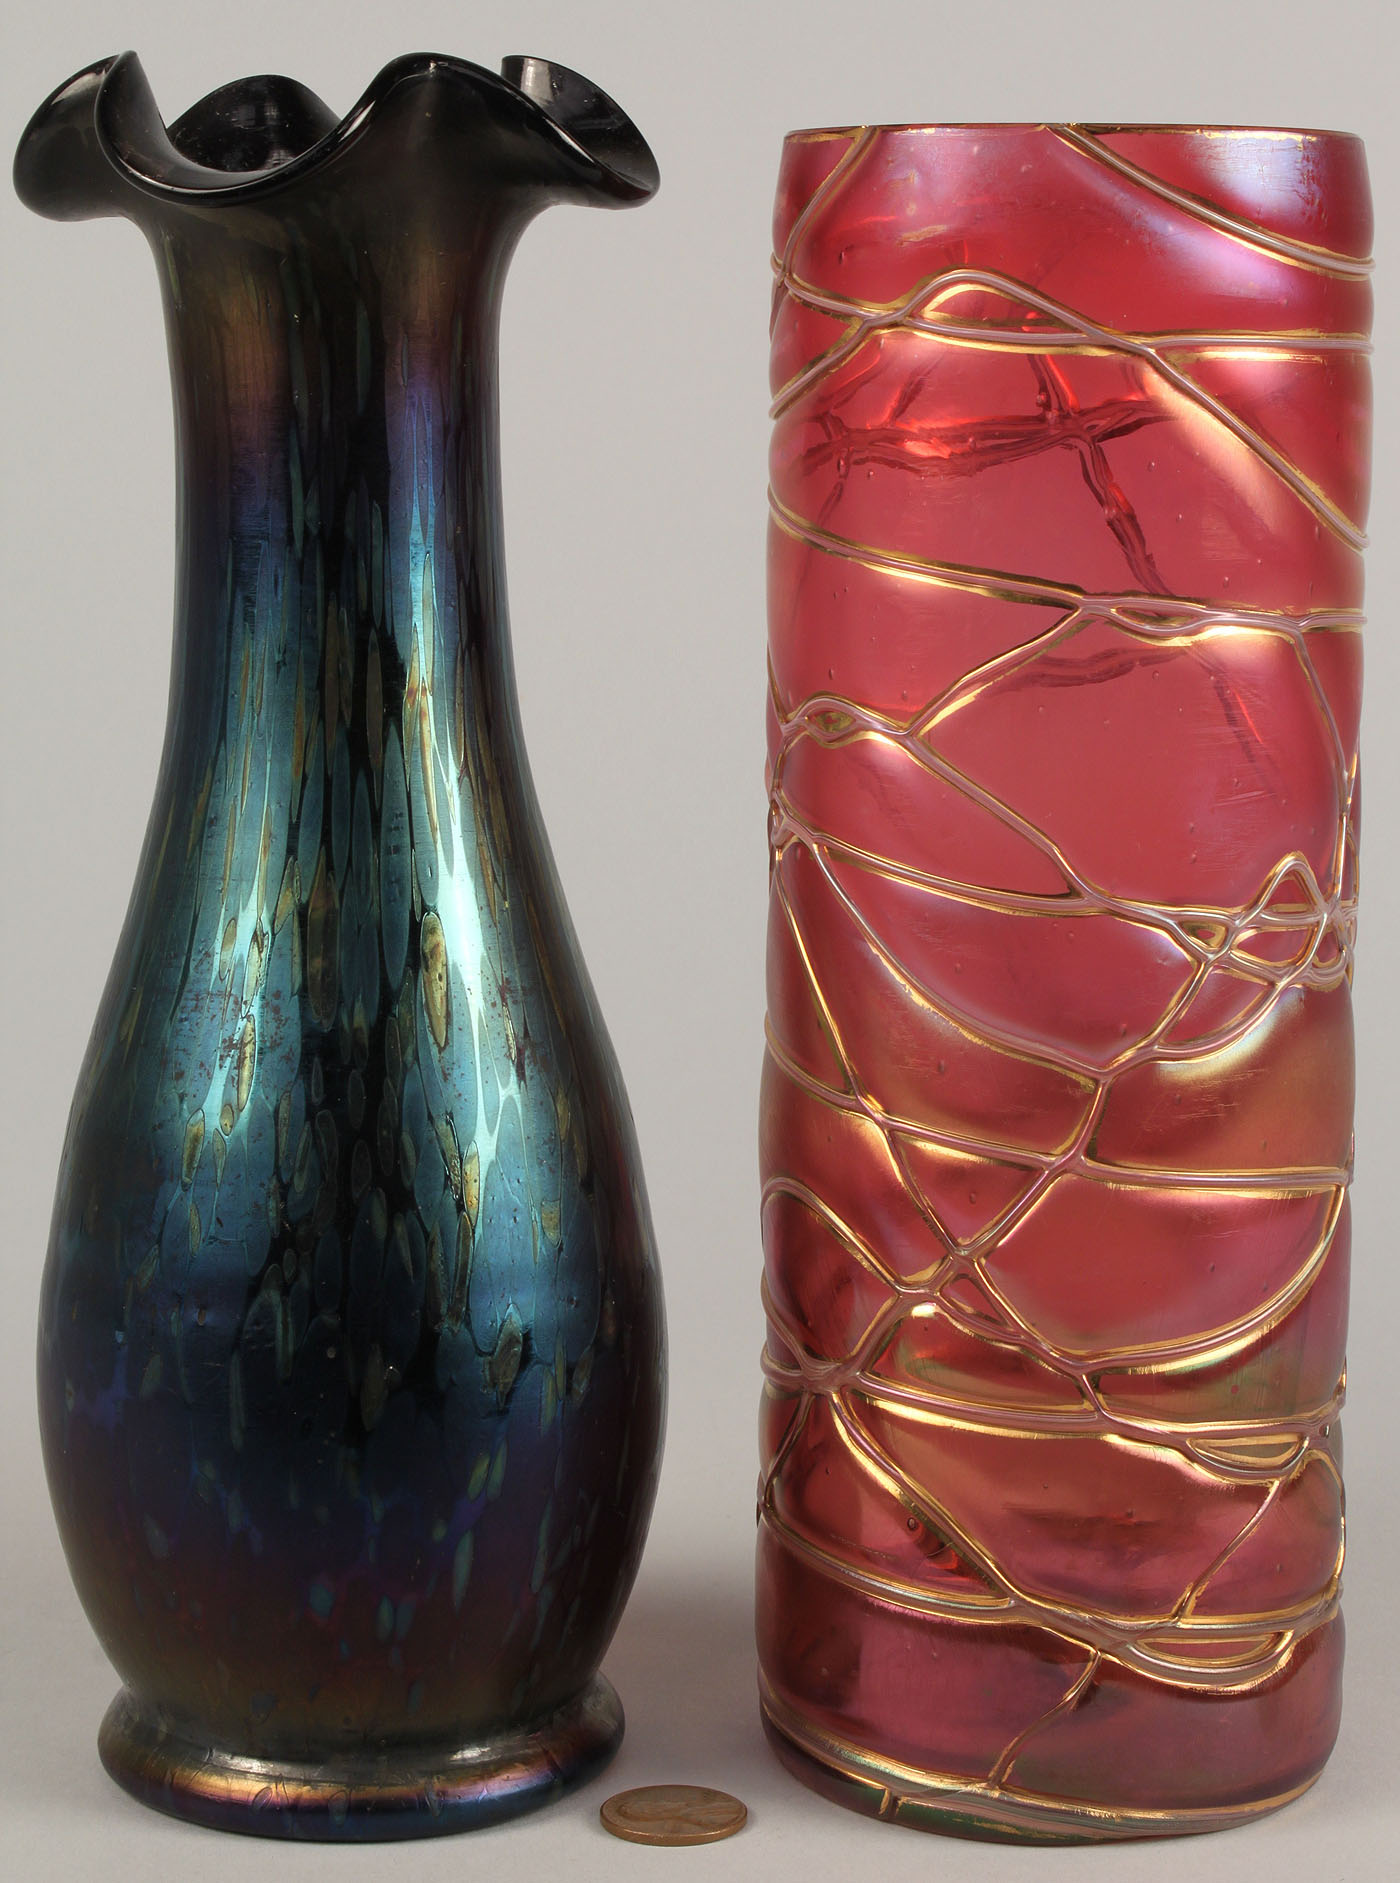 321 2 art glass vases loetz kralik lot 321 2 art glass vases loetz kralik reviewsmspy